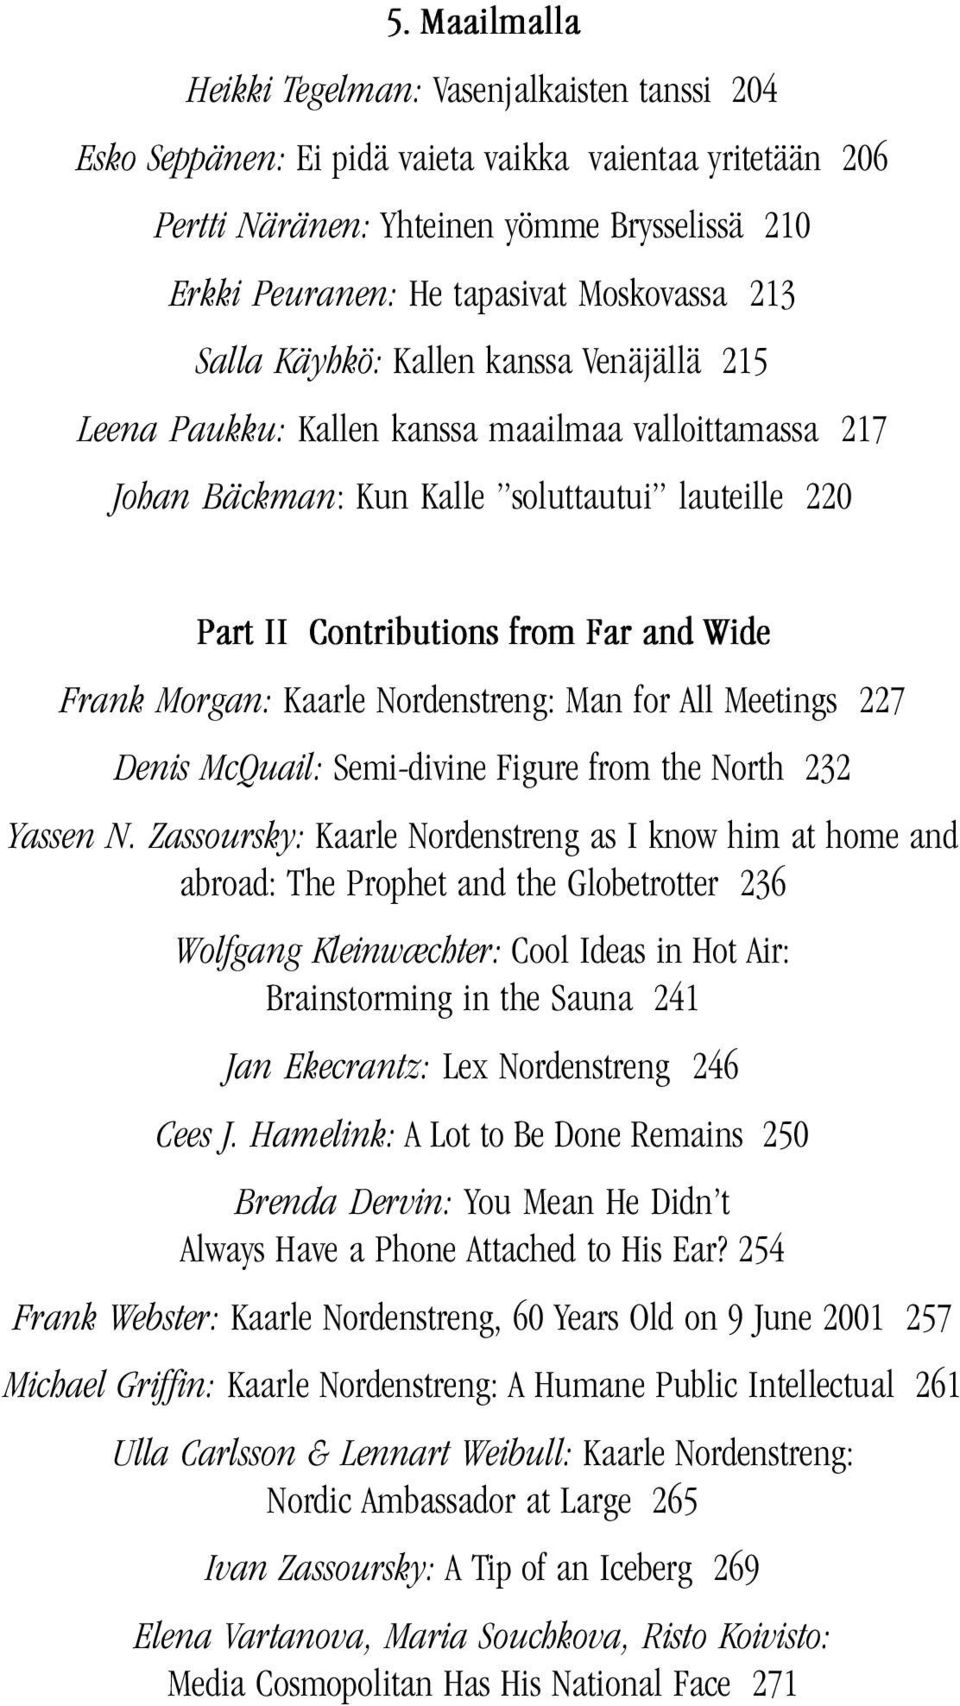 Wide Frank Morgan: Kaarle Nordenstreng: Man for All Meetings 227 Denis McQuail: Semi-divine Figure from the North 232 Yassen N.